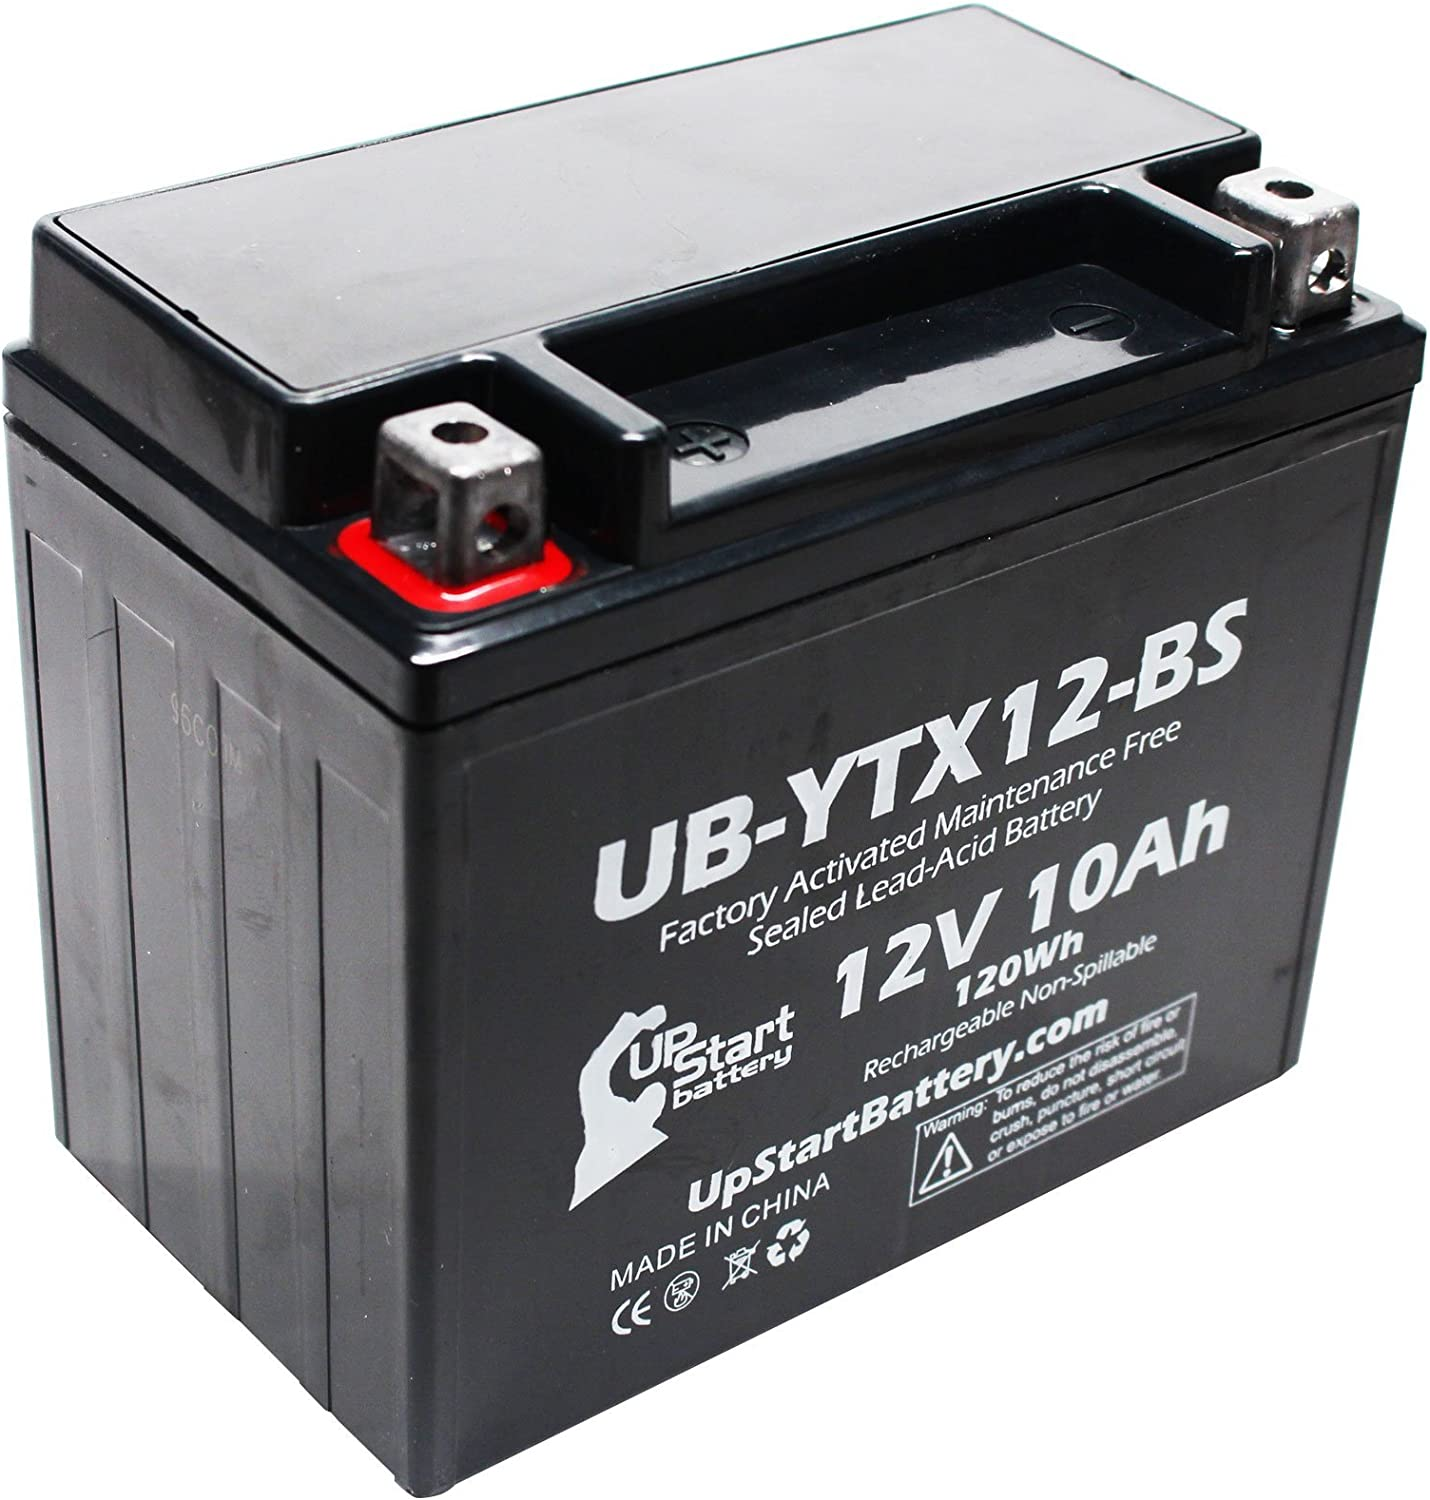 UpStart Battery UB-YTX12-BS